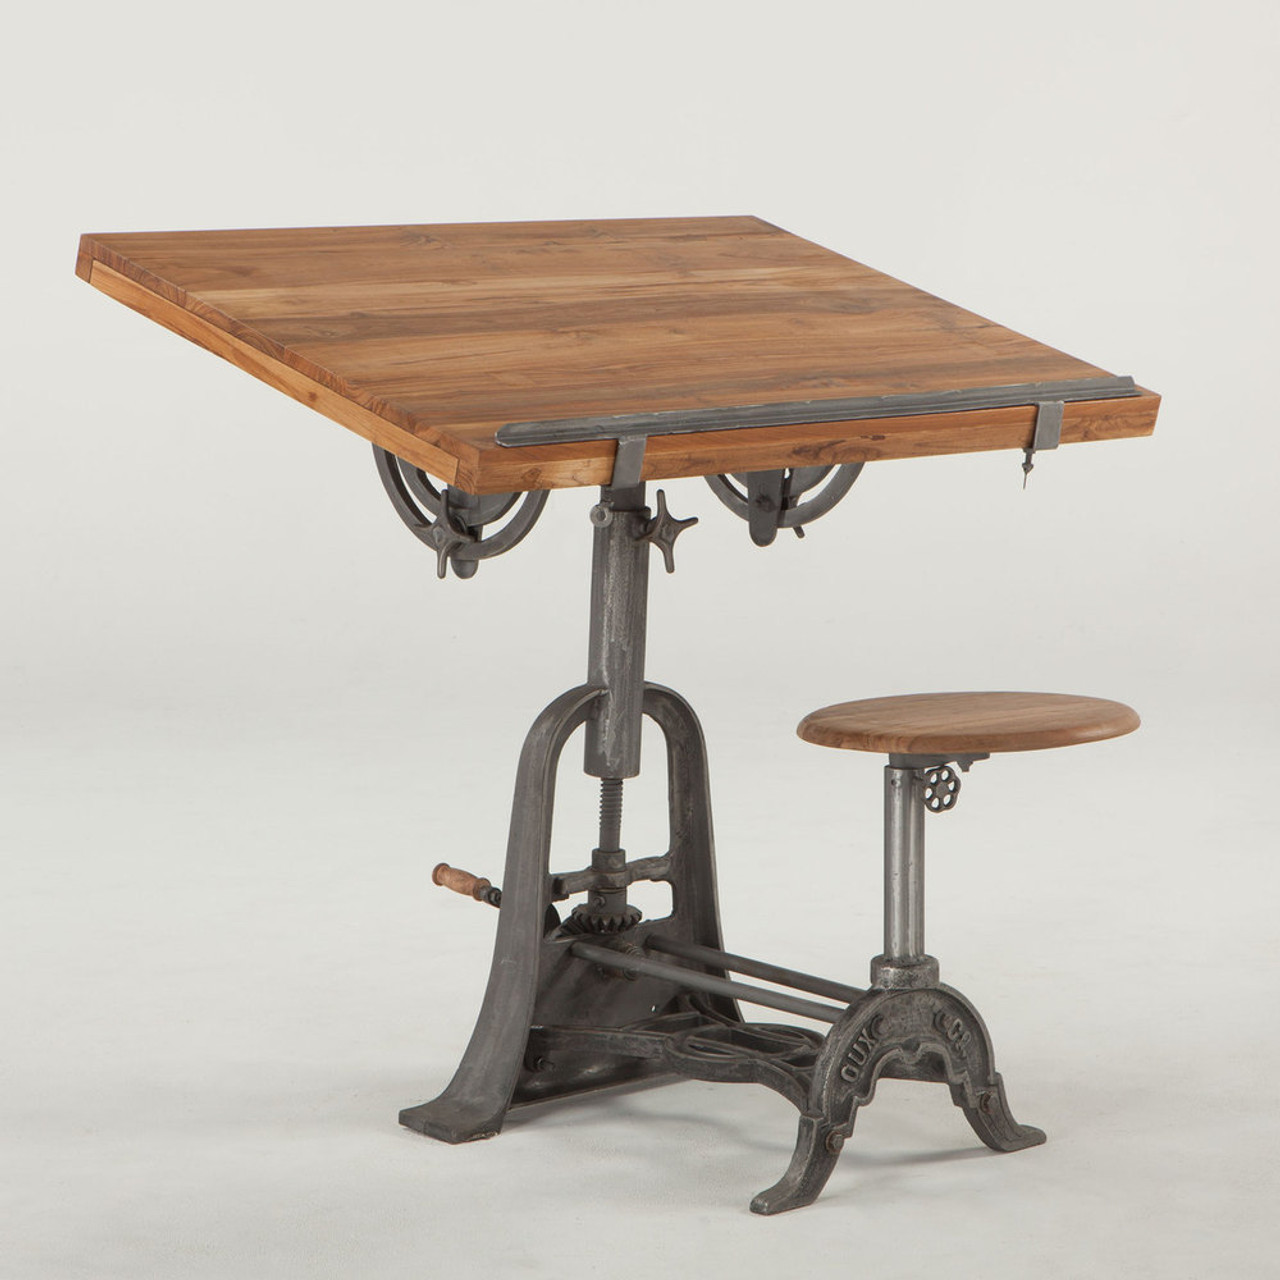 Ordinaire French Vintage Industrial Architect Drafting Table With Attached Seat